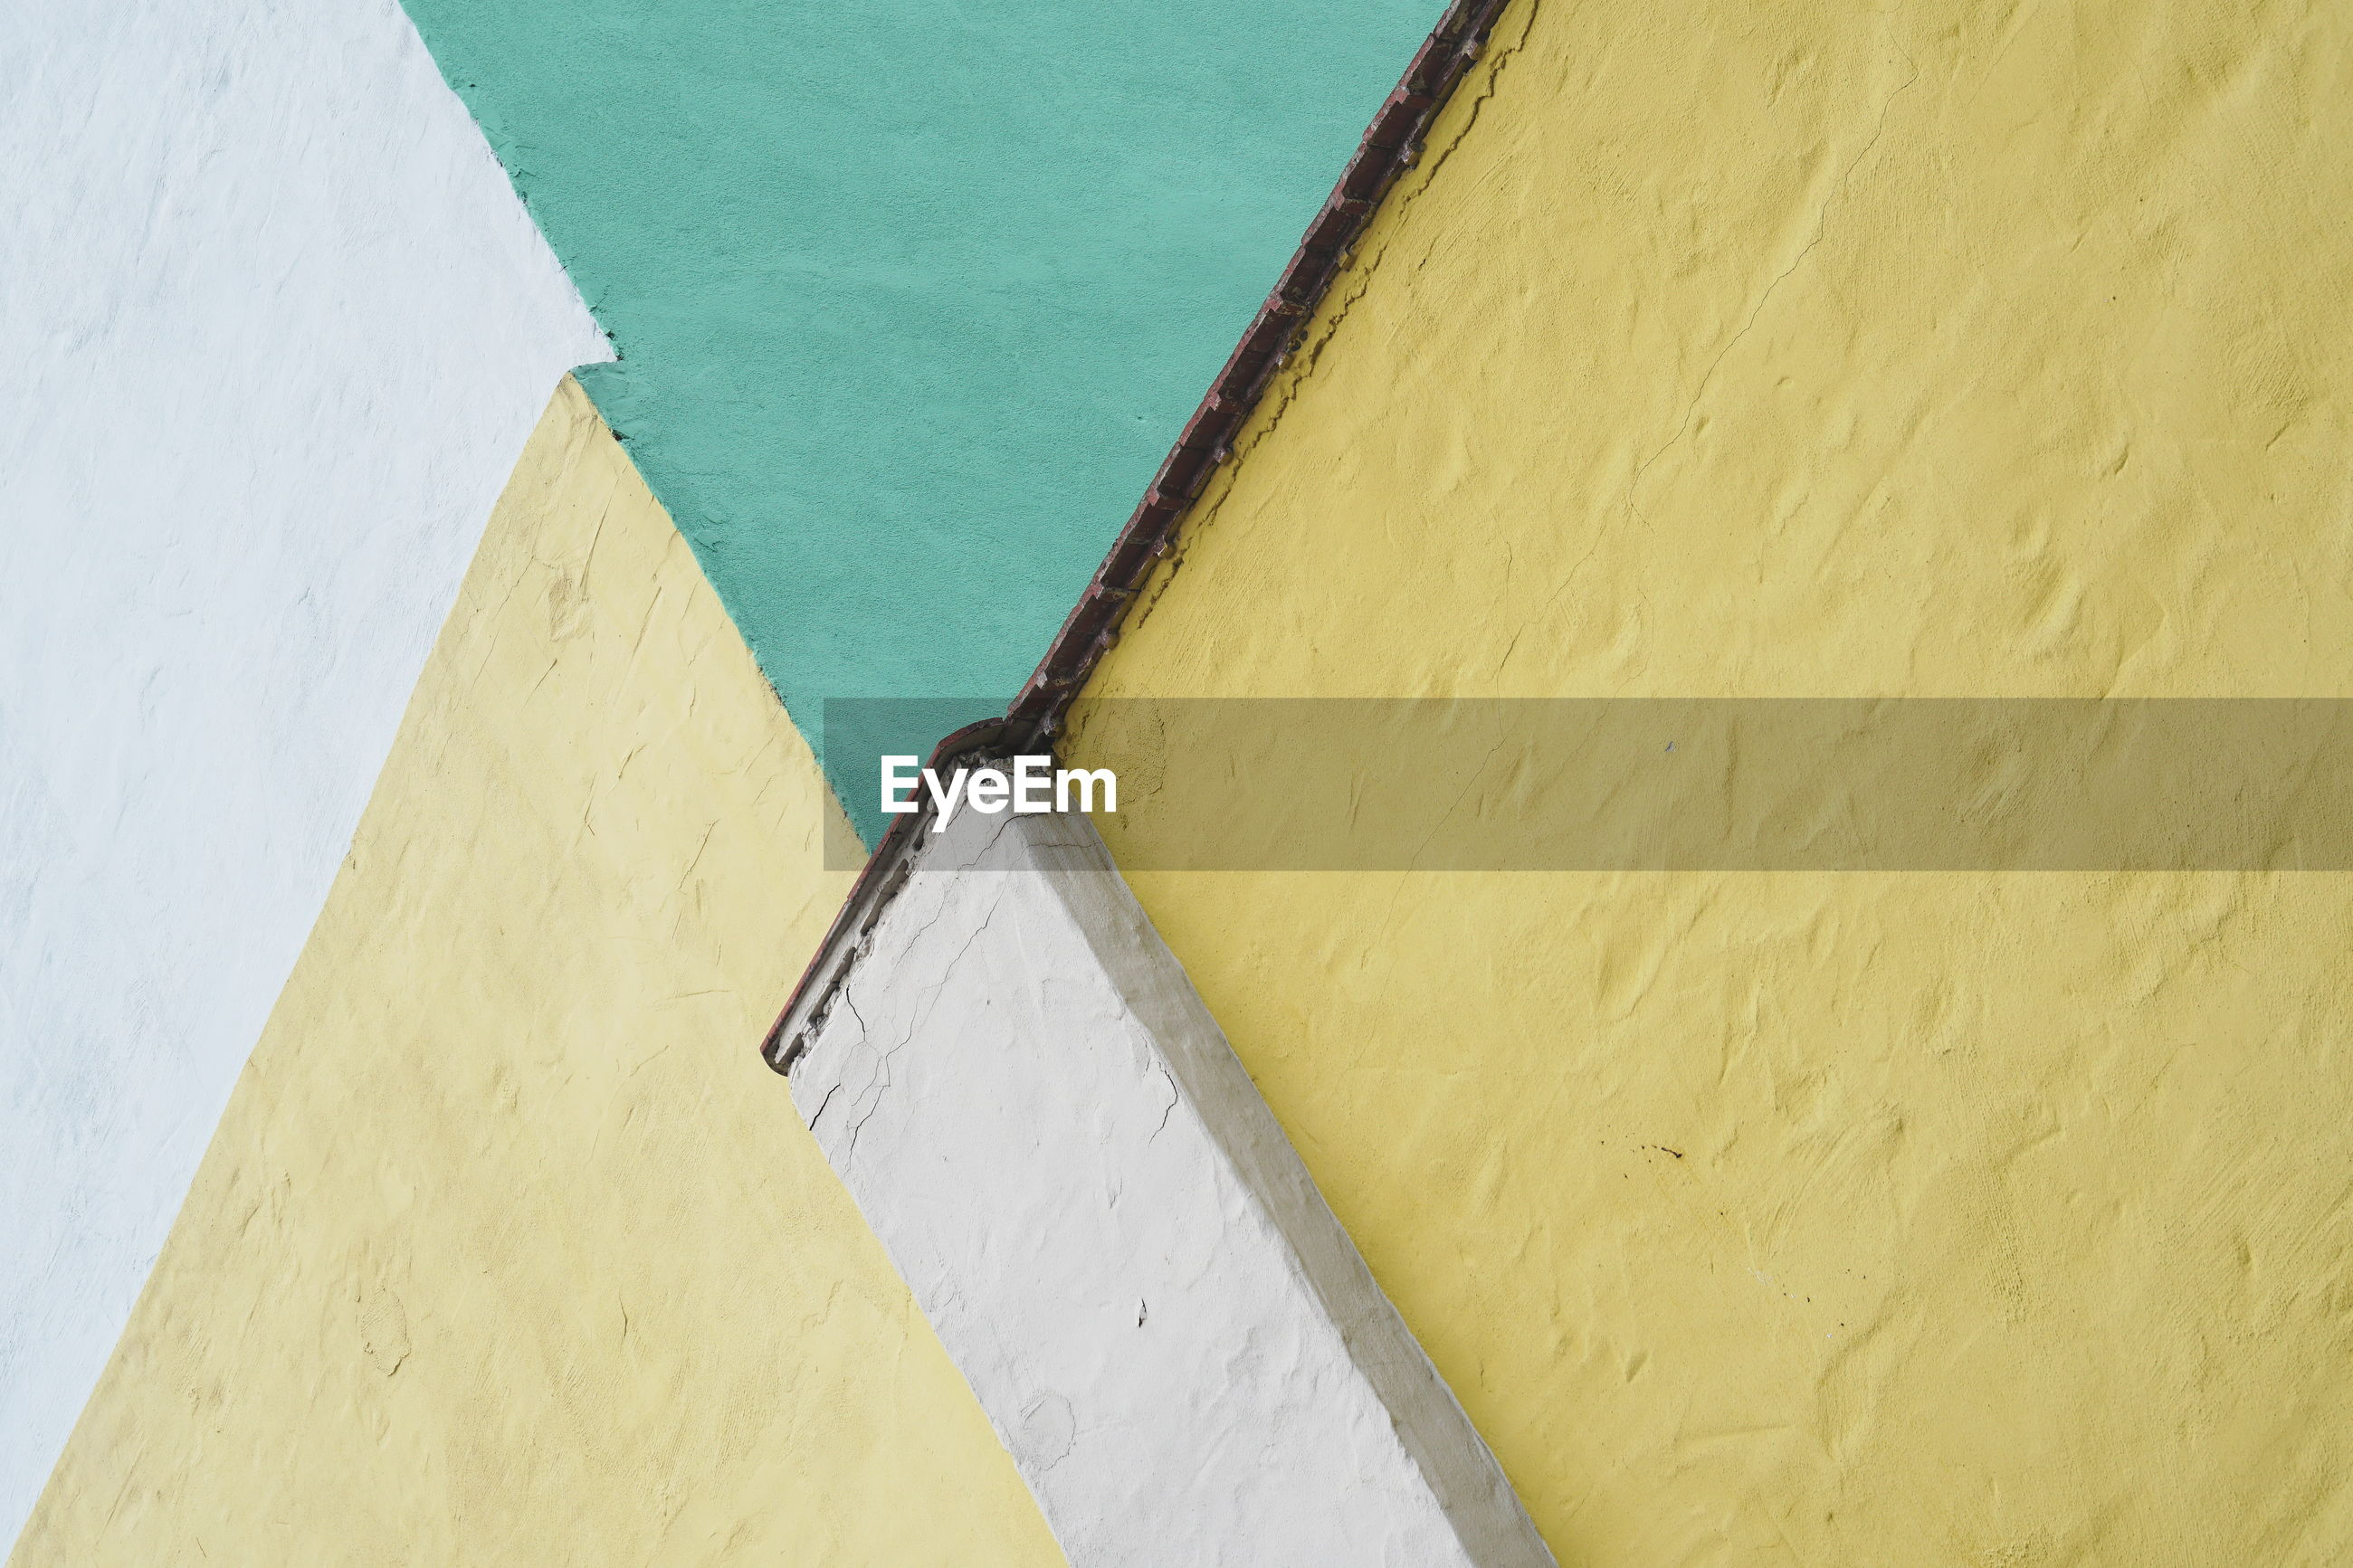 HIGH ANGLE VIEW OF WHITE WALL WITH UMBRELLA